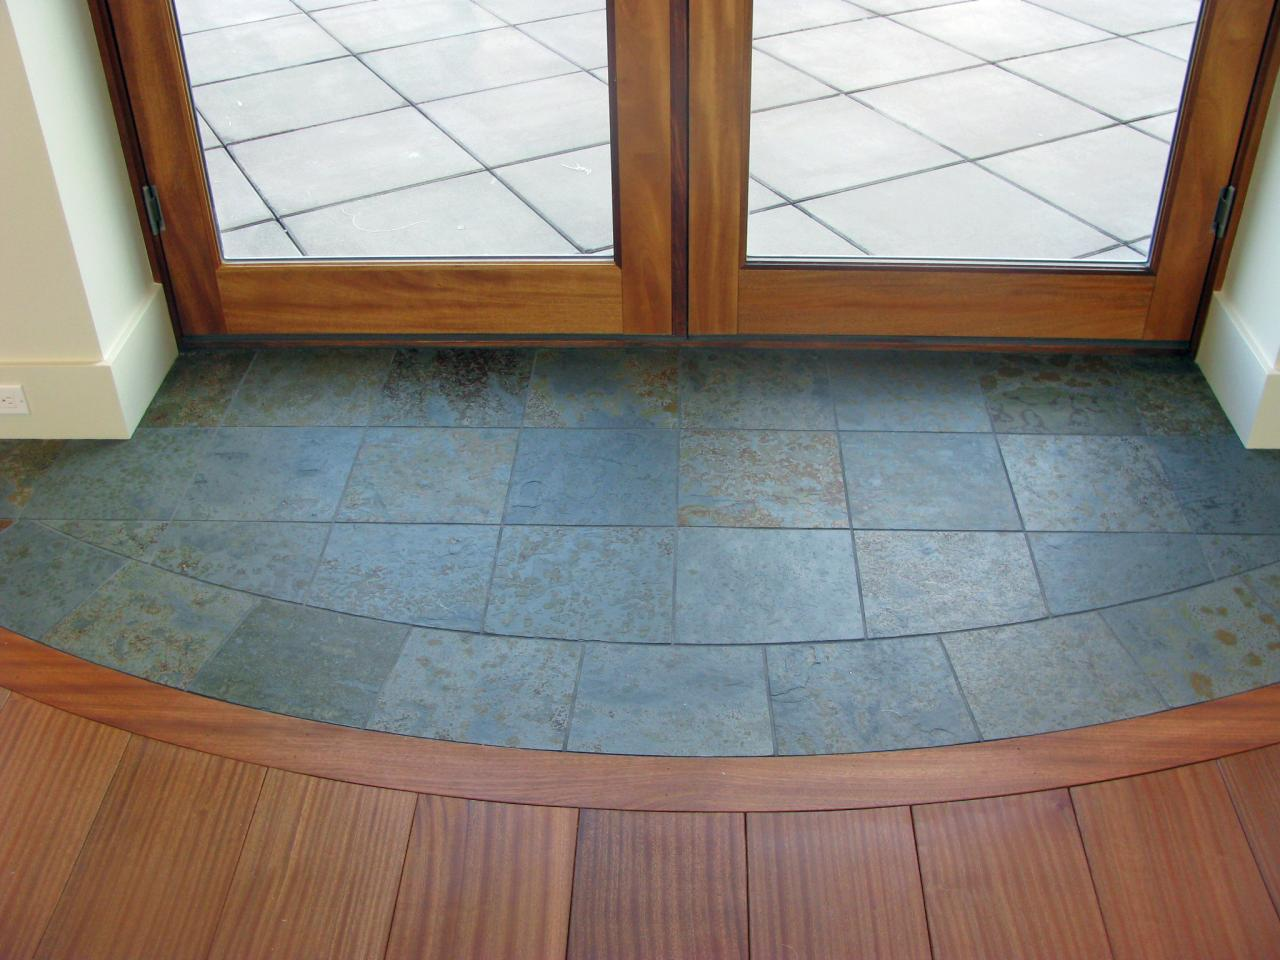 Foyer Tile Grout : Tile flooring options interior design styles and color